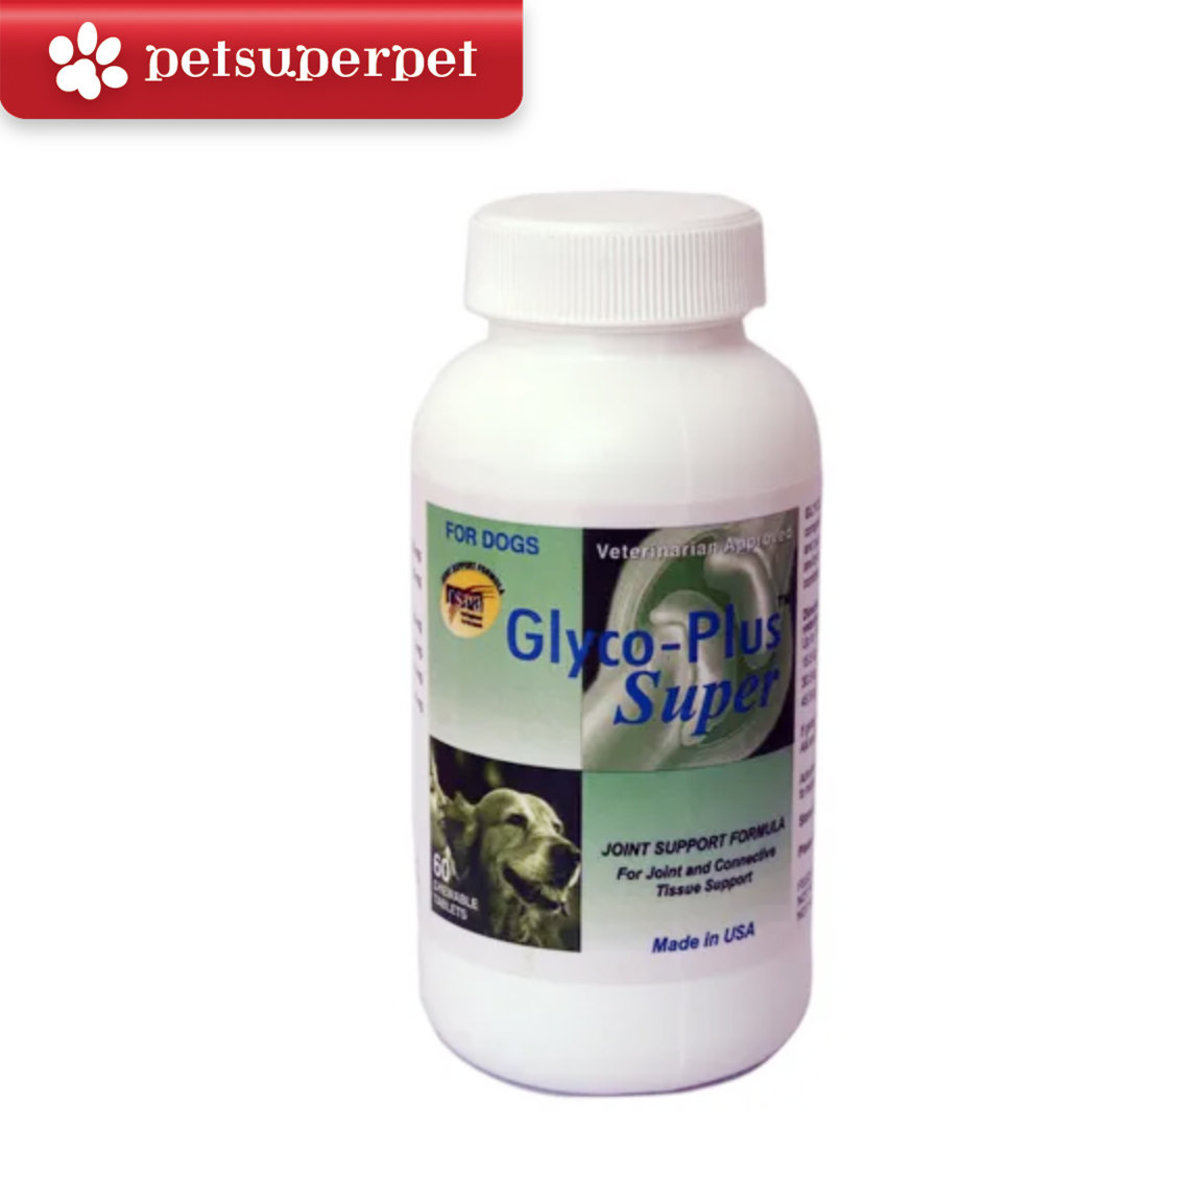 SAIQUIN Glyco-Plus Super (Joint Support Formula for Dogs) - 60 Tablets